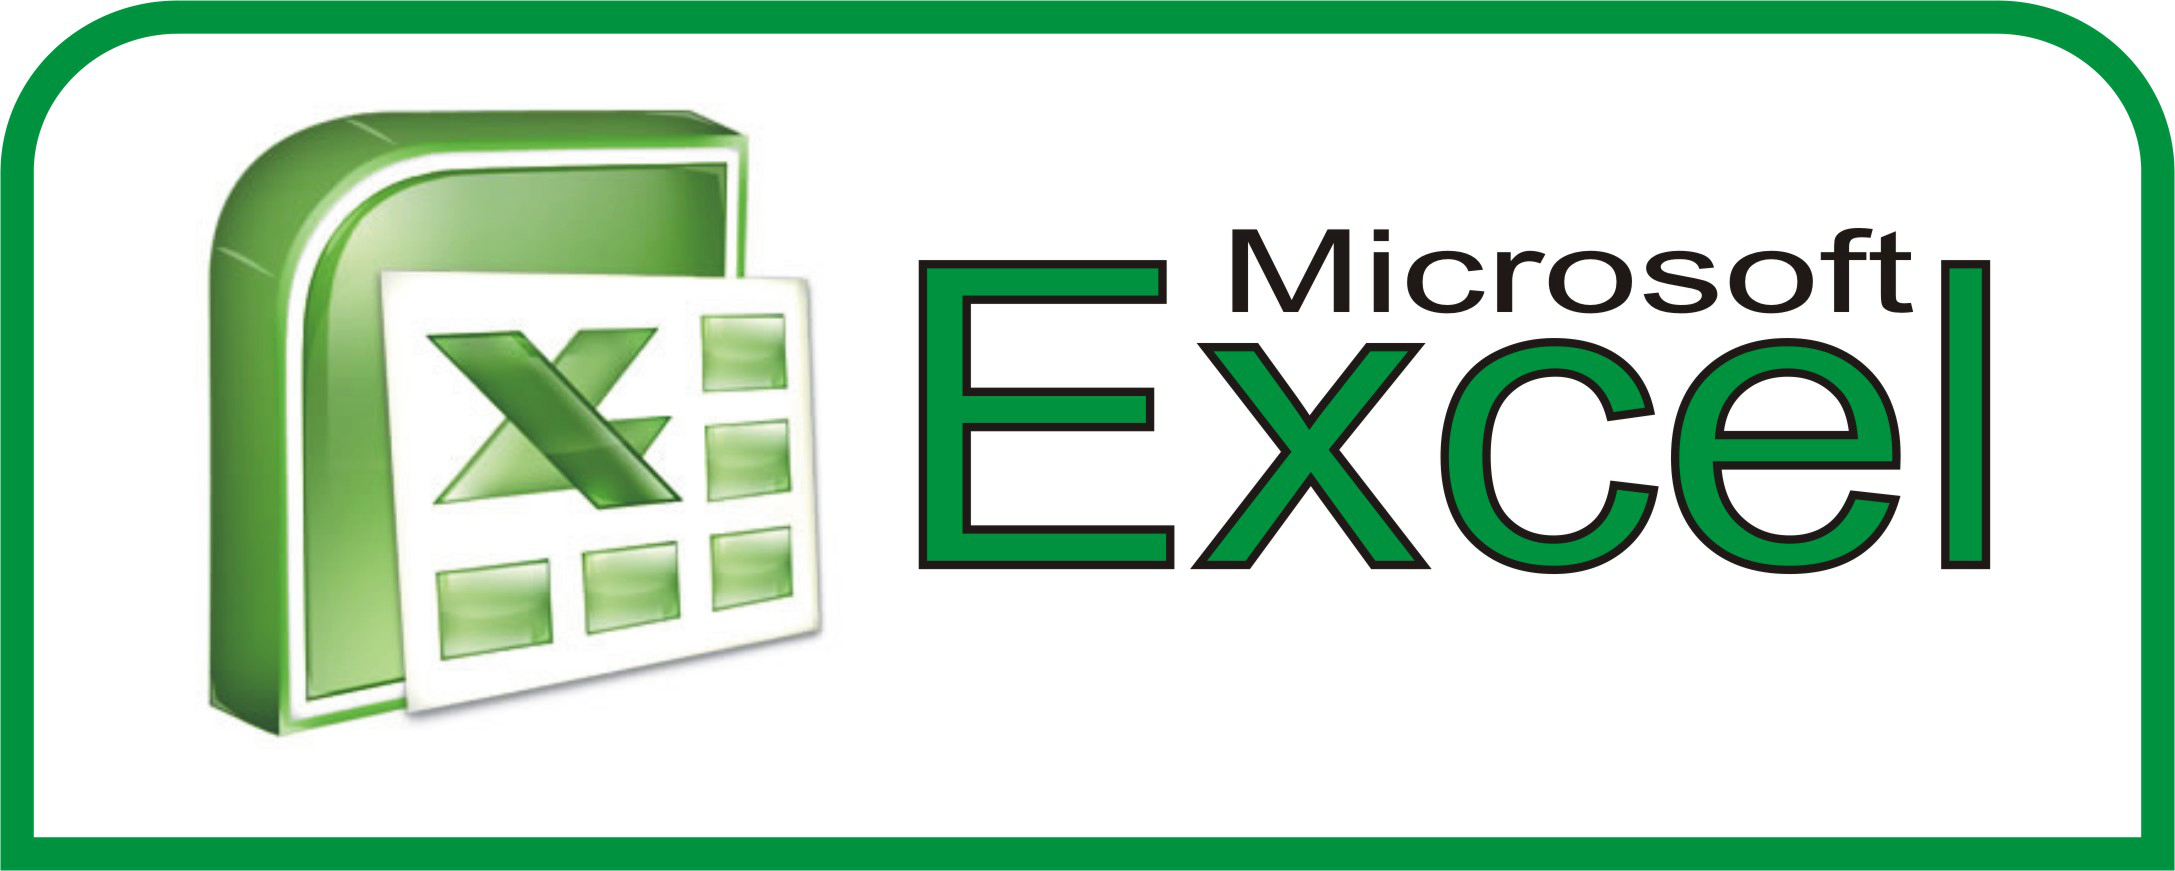 Ediblewildsus  Terrific  Excel Shortcuts You Probably Didnt Know About  Techdissected With Goodlooking Excel Remove Duplicate Rows Besides Excel Isblank Furthermore Excel Function List With Cute Excel If Statements Also Adding Time In Excel In Addition Excel Formula Cheat Sheet And How To Do A Line Break In Excel As Well As How To Merge Excel Sheets Additionally Reorder Columns In Excel From Techdissectedcom With Ediblewildsus  Goodlooking  Excel Shortcuts You Probably Didnt Know About  Techdissected With Cute Excel Remove Duplicate Rows Besides Excel Isblank Furthermore Excel Function List And Terrific Excel If Statements Also Adding Time In Excel In Addition Excel Formula Cheat Sheet From Techdissectedcom